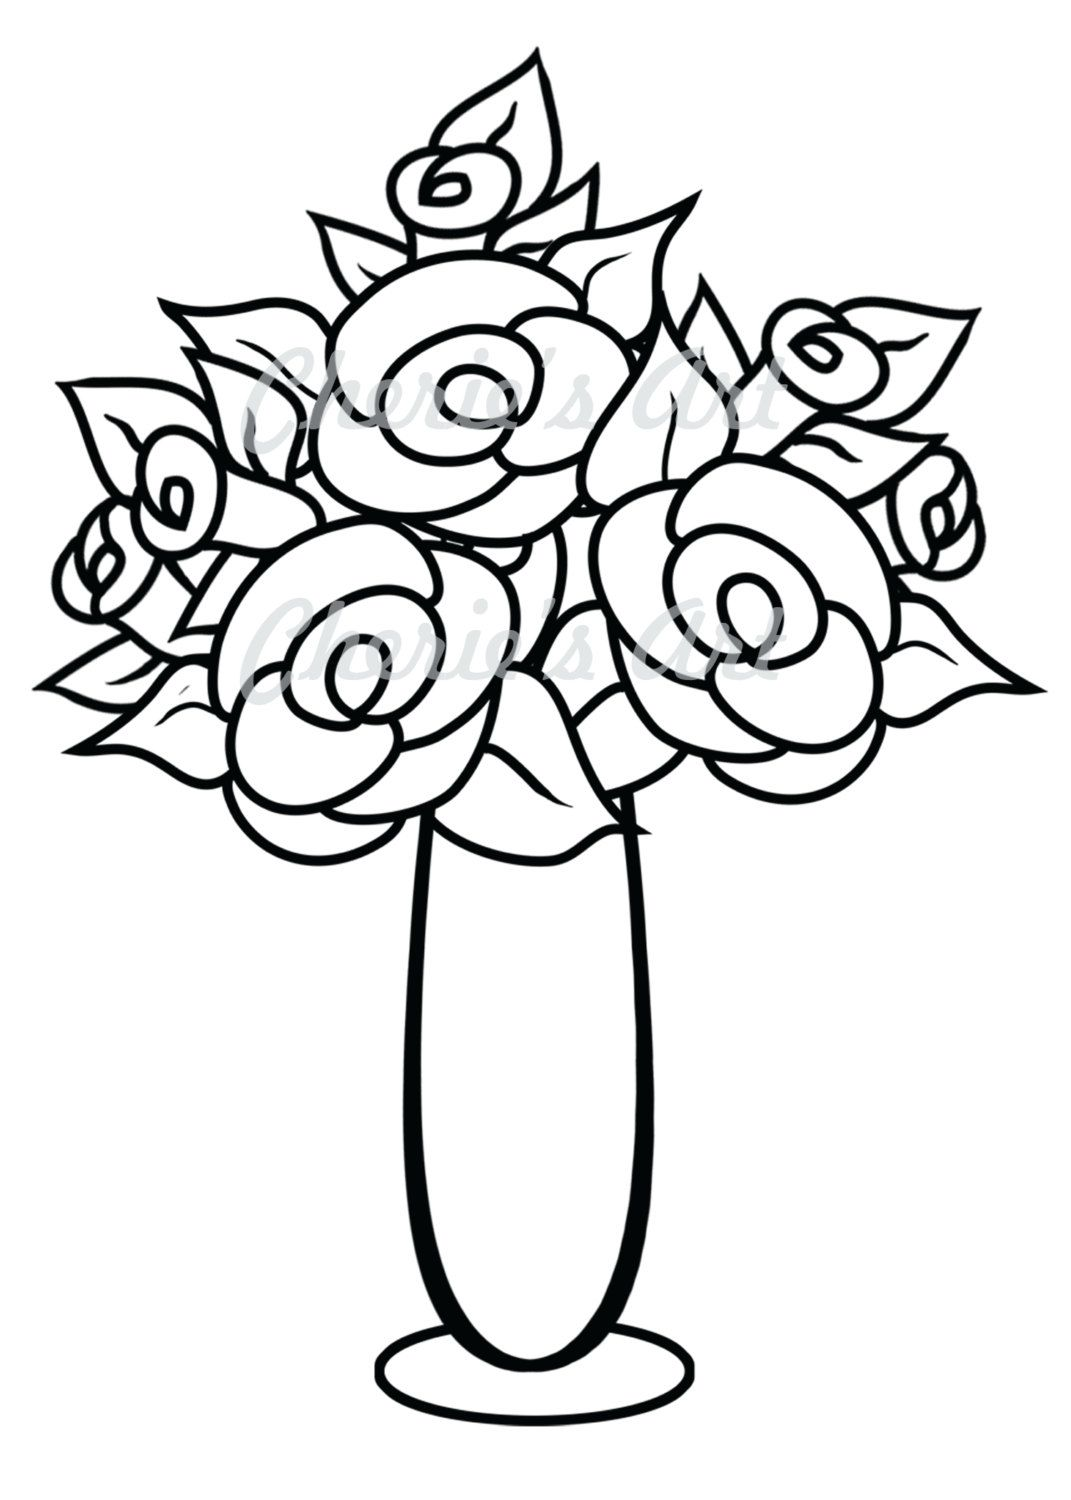 Digi Stamp Rose Vase Line Art Originals Jpg Downloadables Printables You Color 2 00 Via Etsy Floral Drawing Flower Vase Drawing Flower Drawing